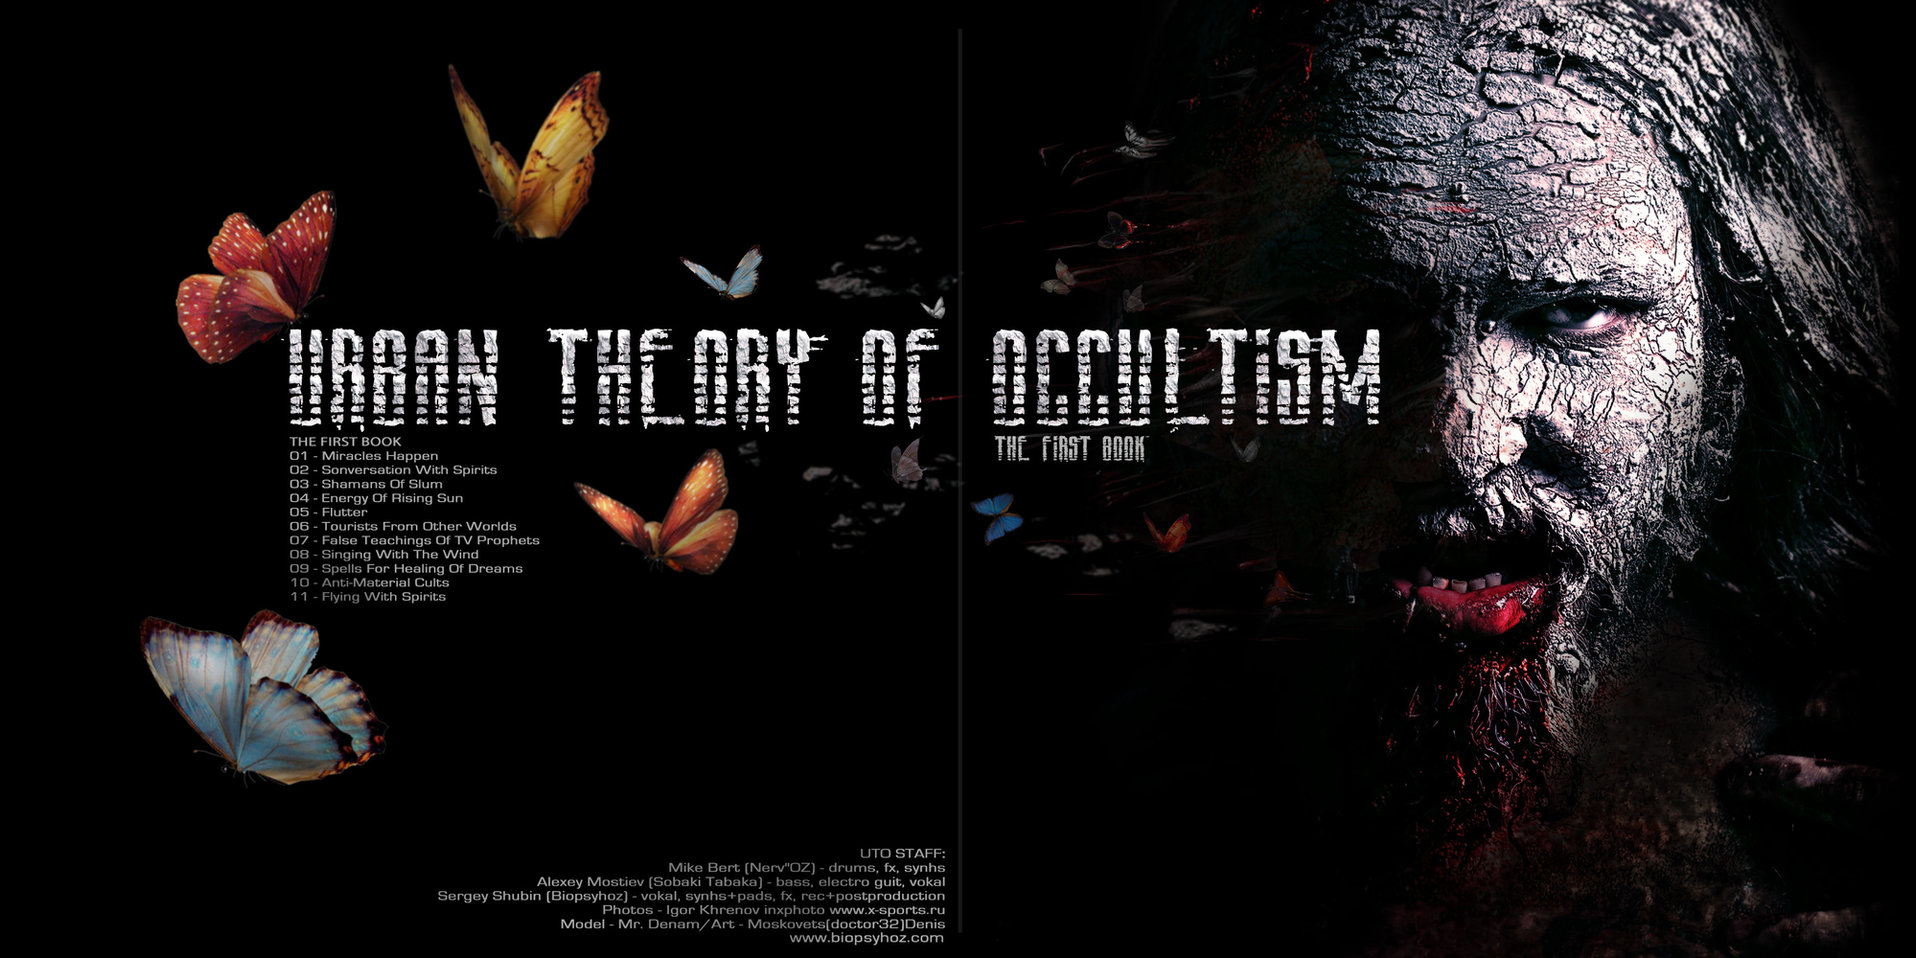 URBAN THEORY OF OCCULTISM_01.jpg